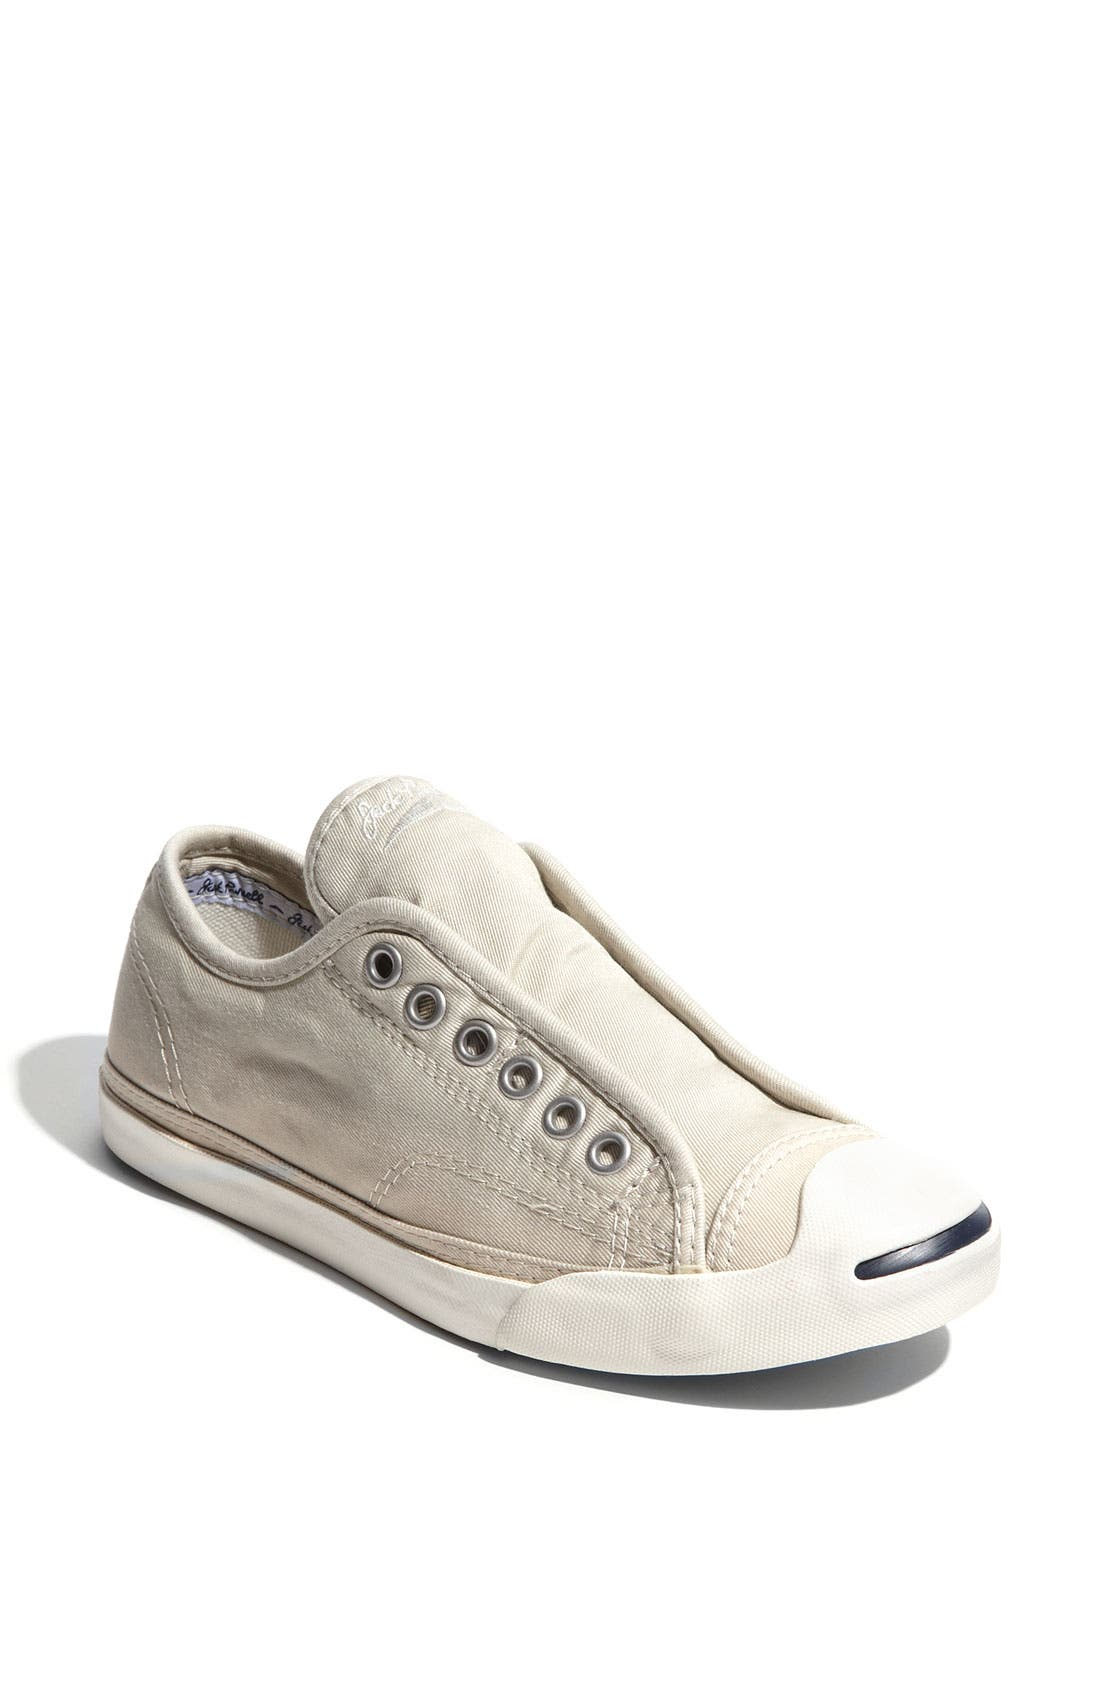 Converse 'Jack Purcell' Slip-On Sneaker